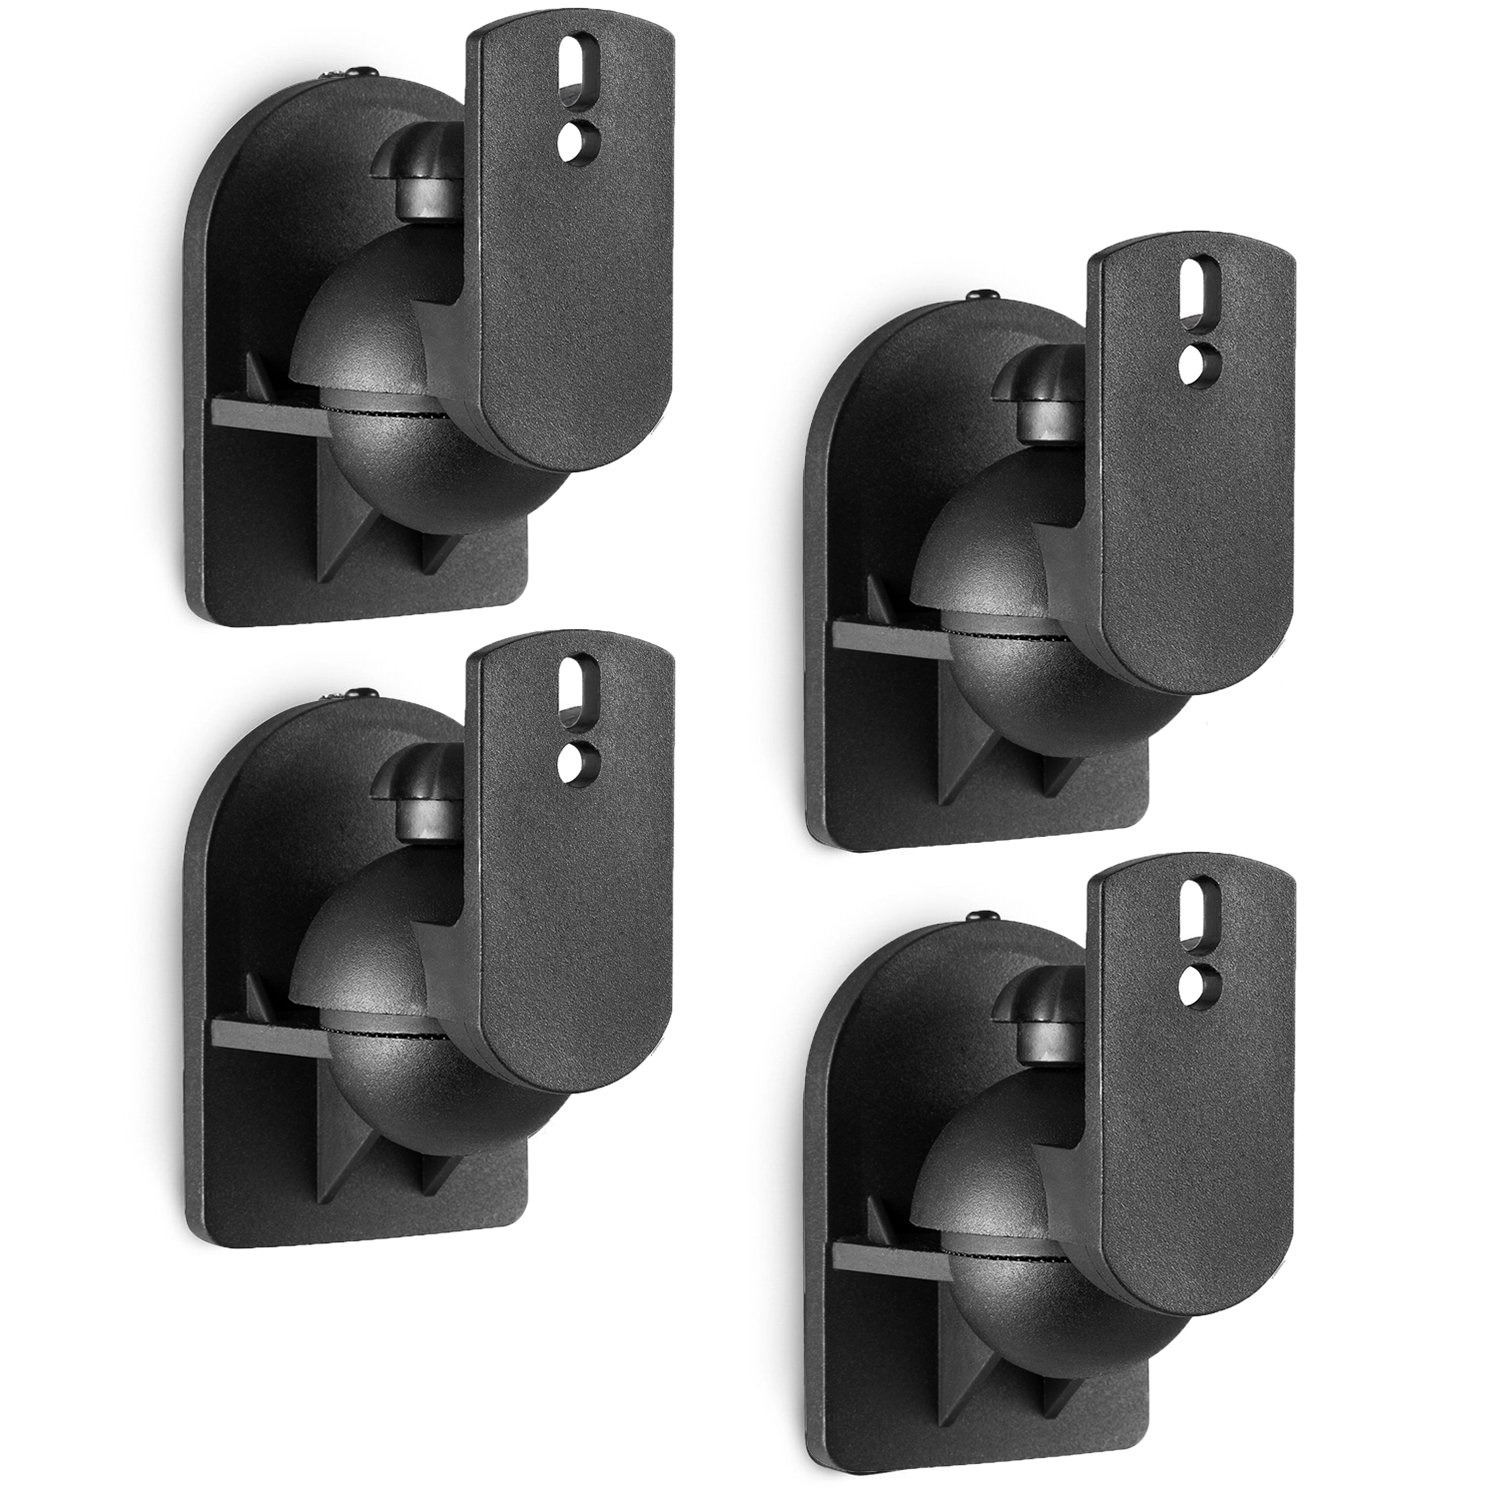 WALI Speaker Wall Mount Brackets Multiple Adjustments for Bookshelf, Surrounding Sound Speakers, Hold up to 7.7 lbs, (SWM402), 4 Packs, Black